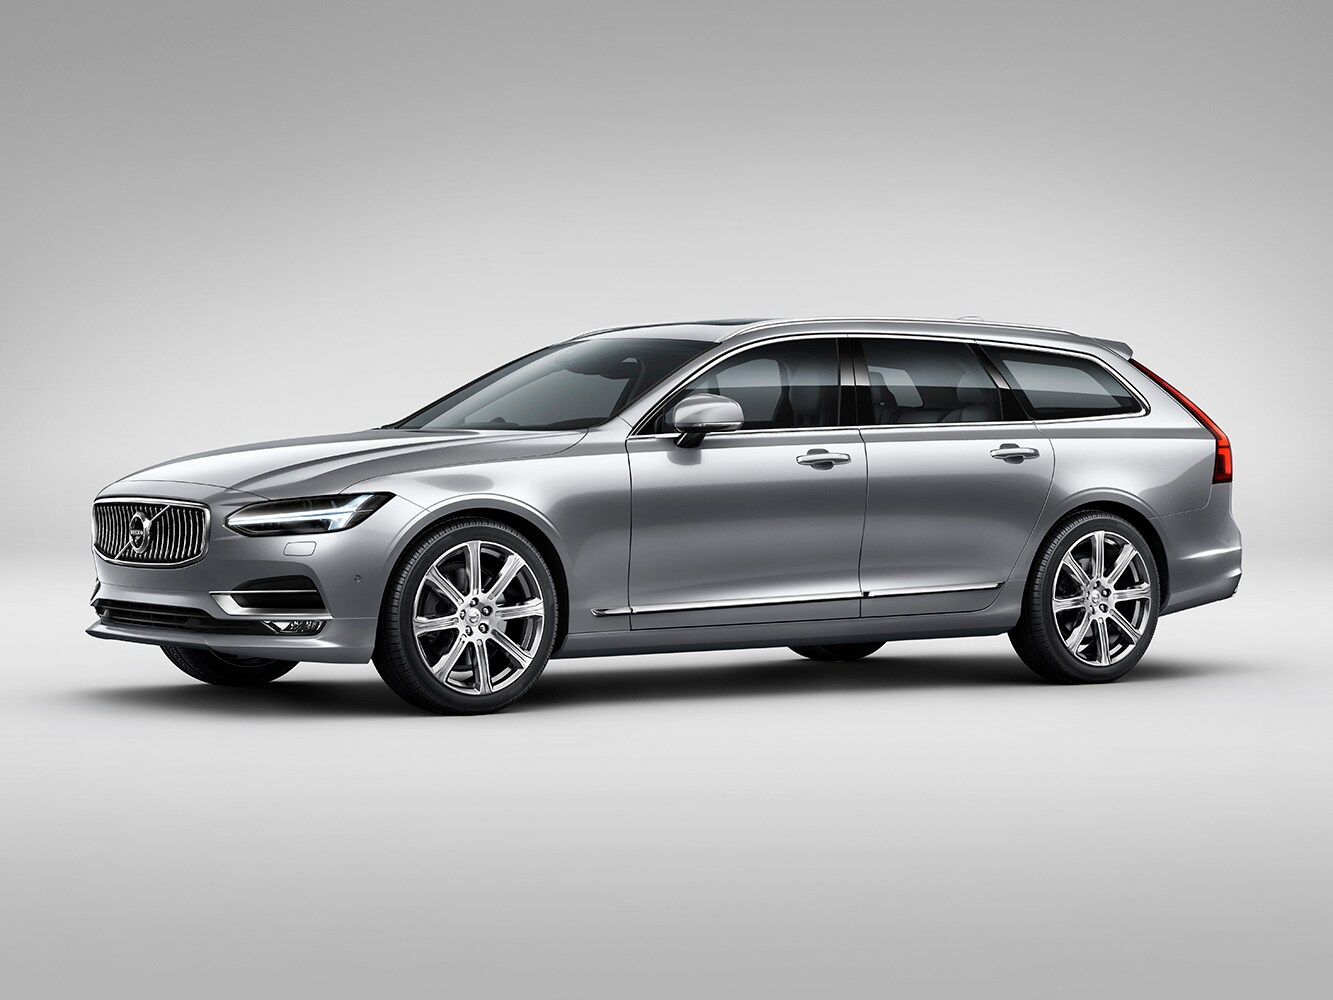 The Volvo V90 Inscription trim